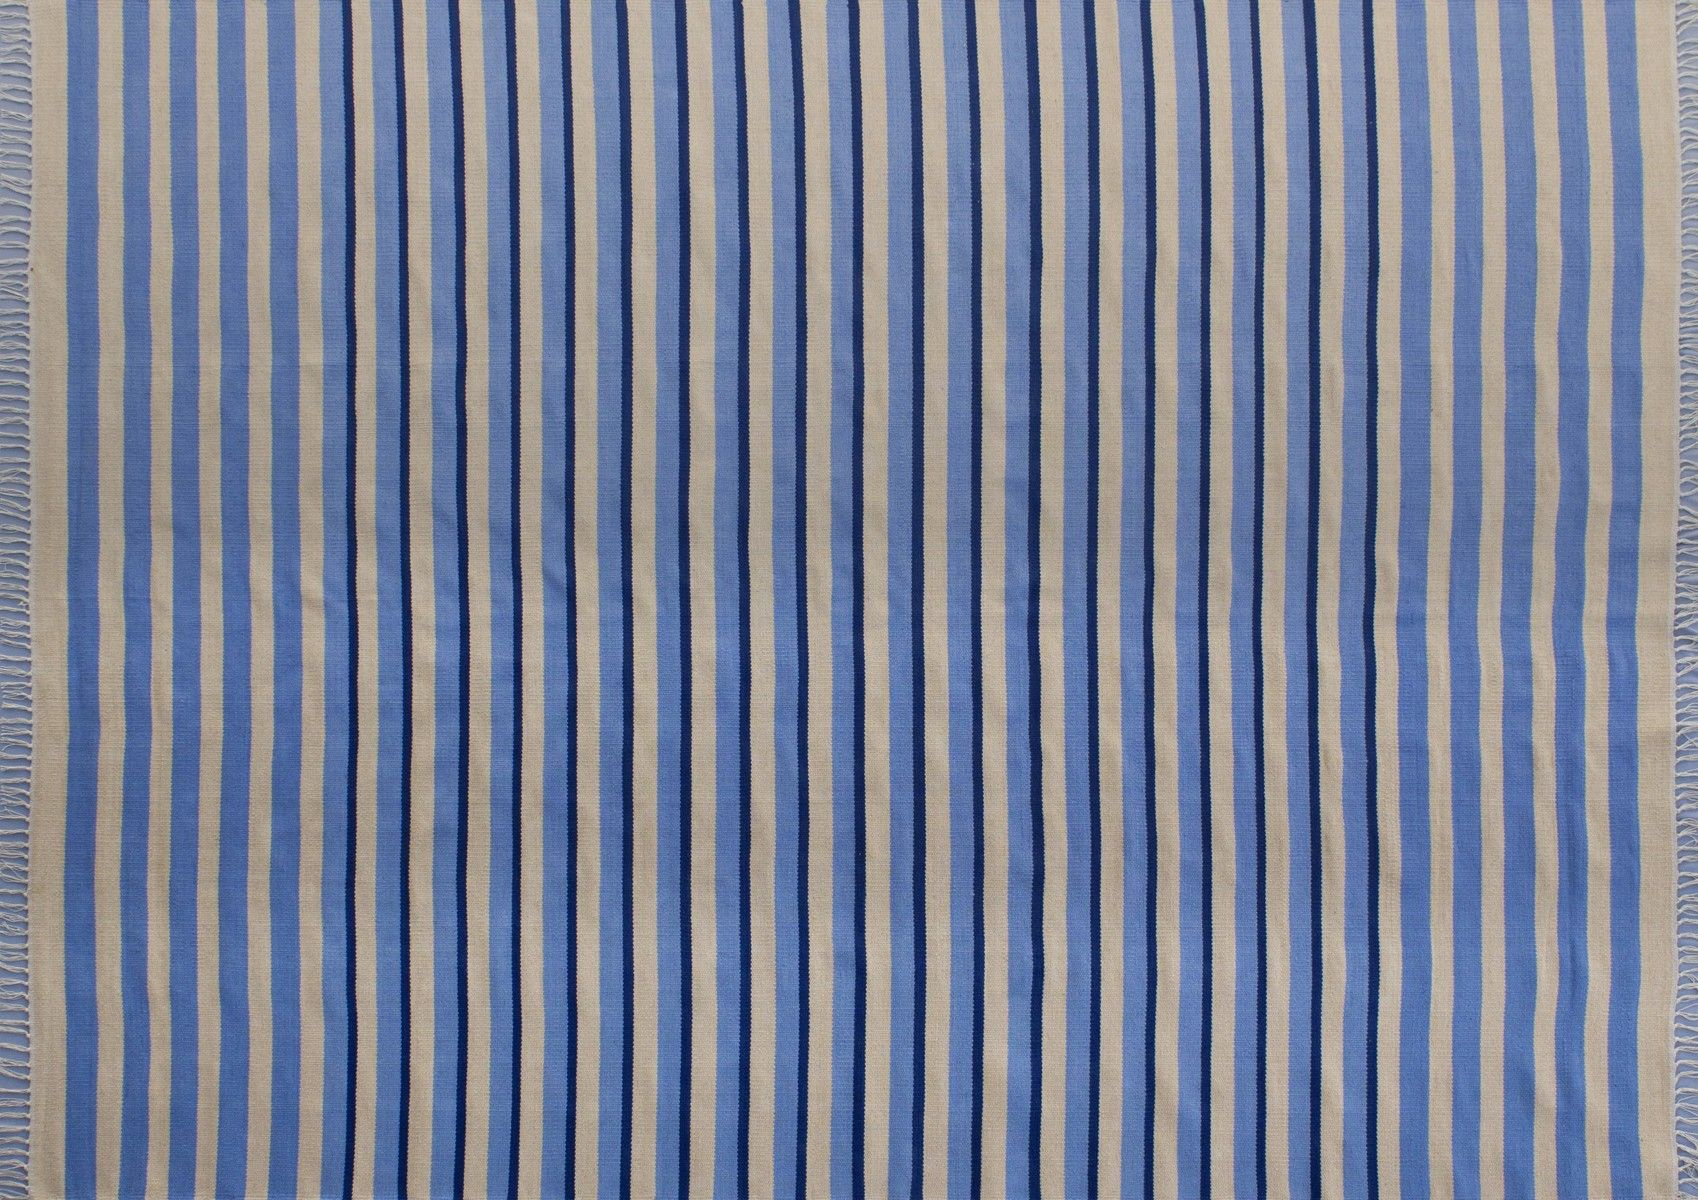 100% cotton handwoven dhurrie - striped design perfect for summer house or modern decor.